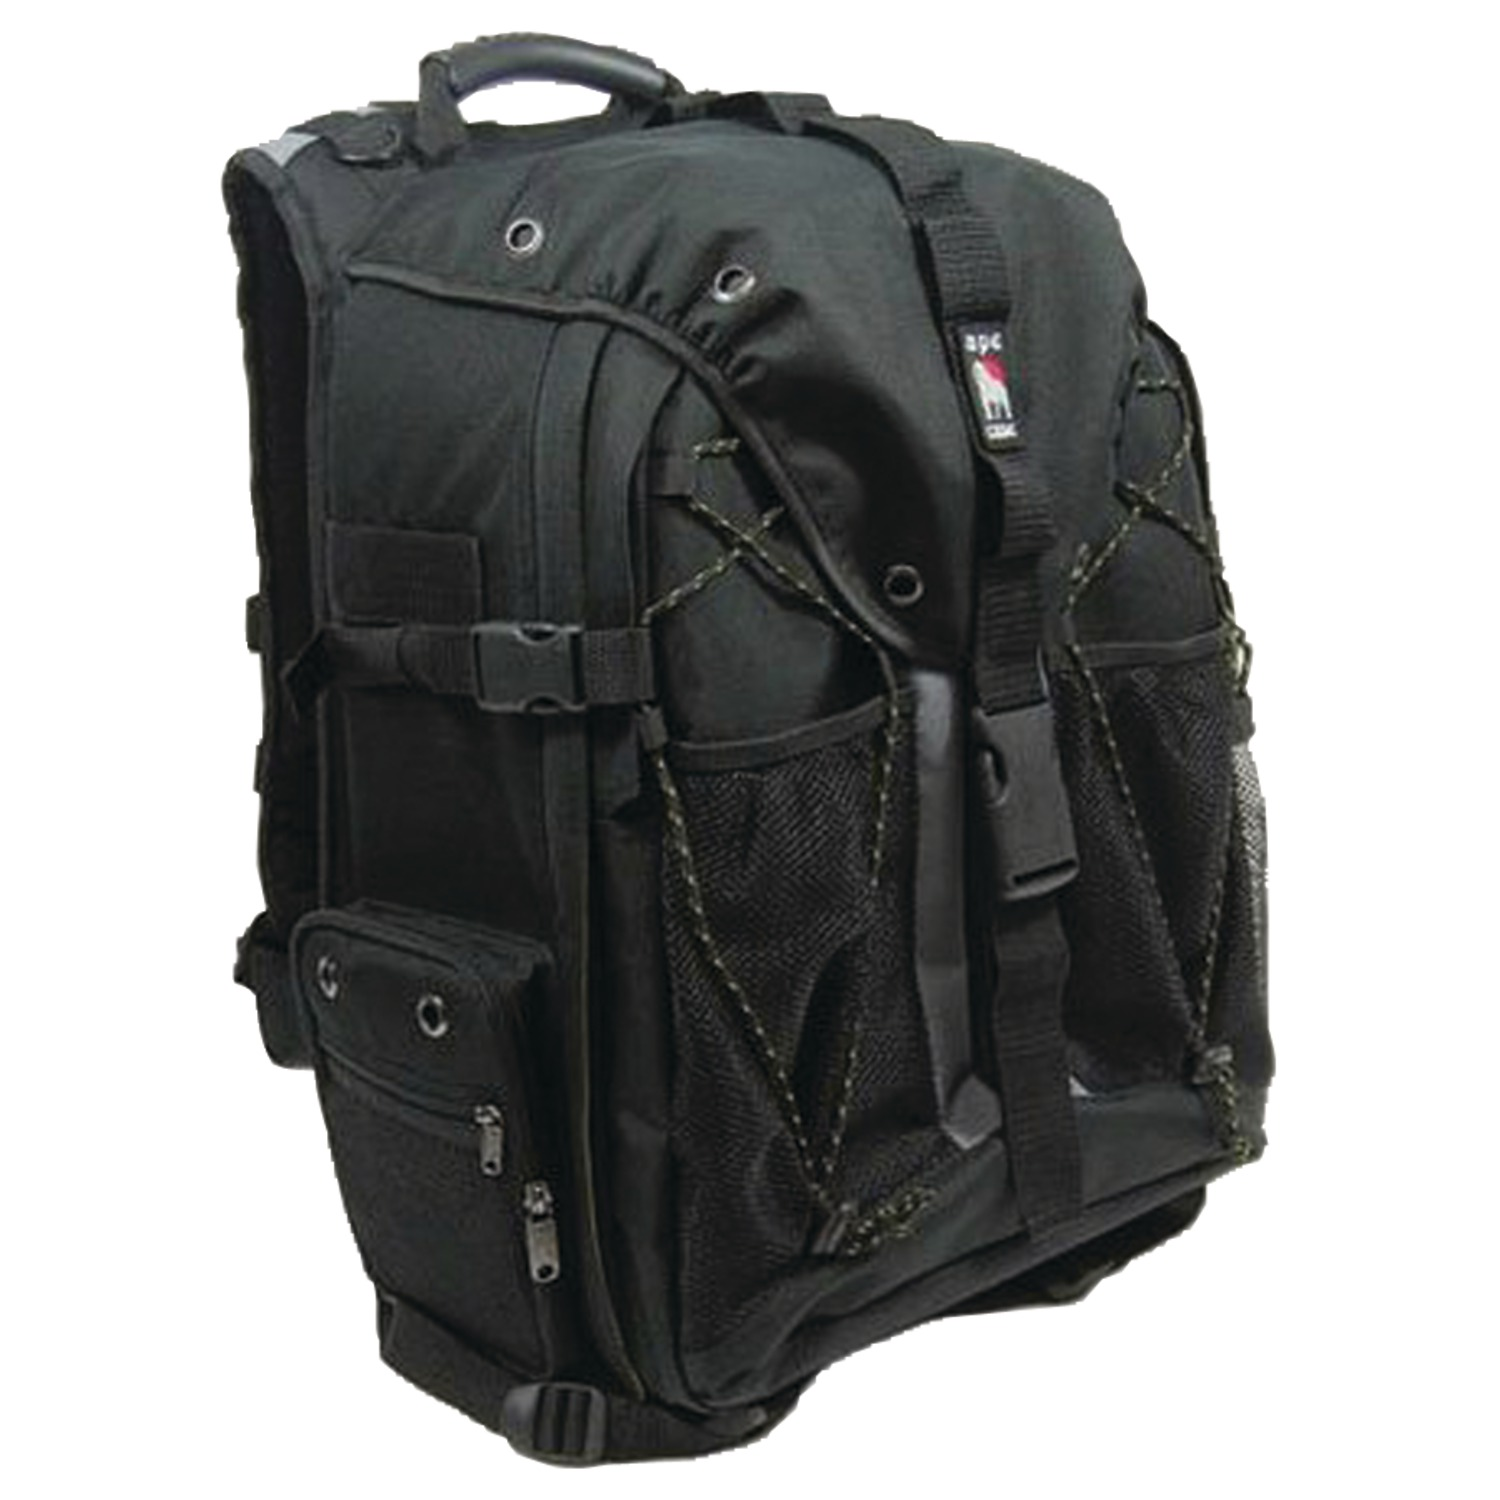 Ape Case ACPRO2000 DSLR & Notebook Backpack (Large)